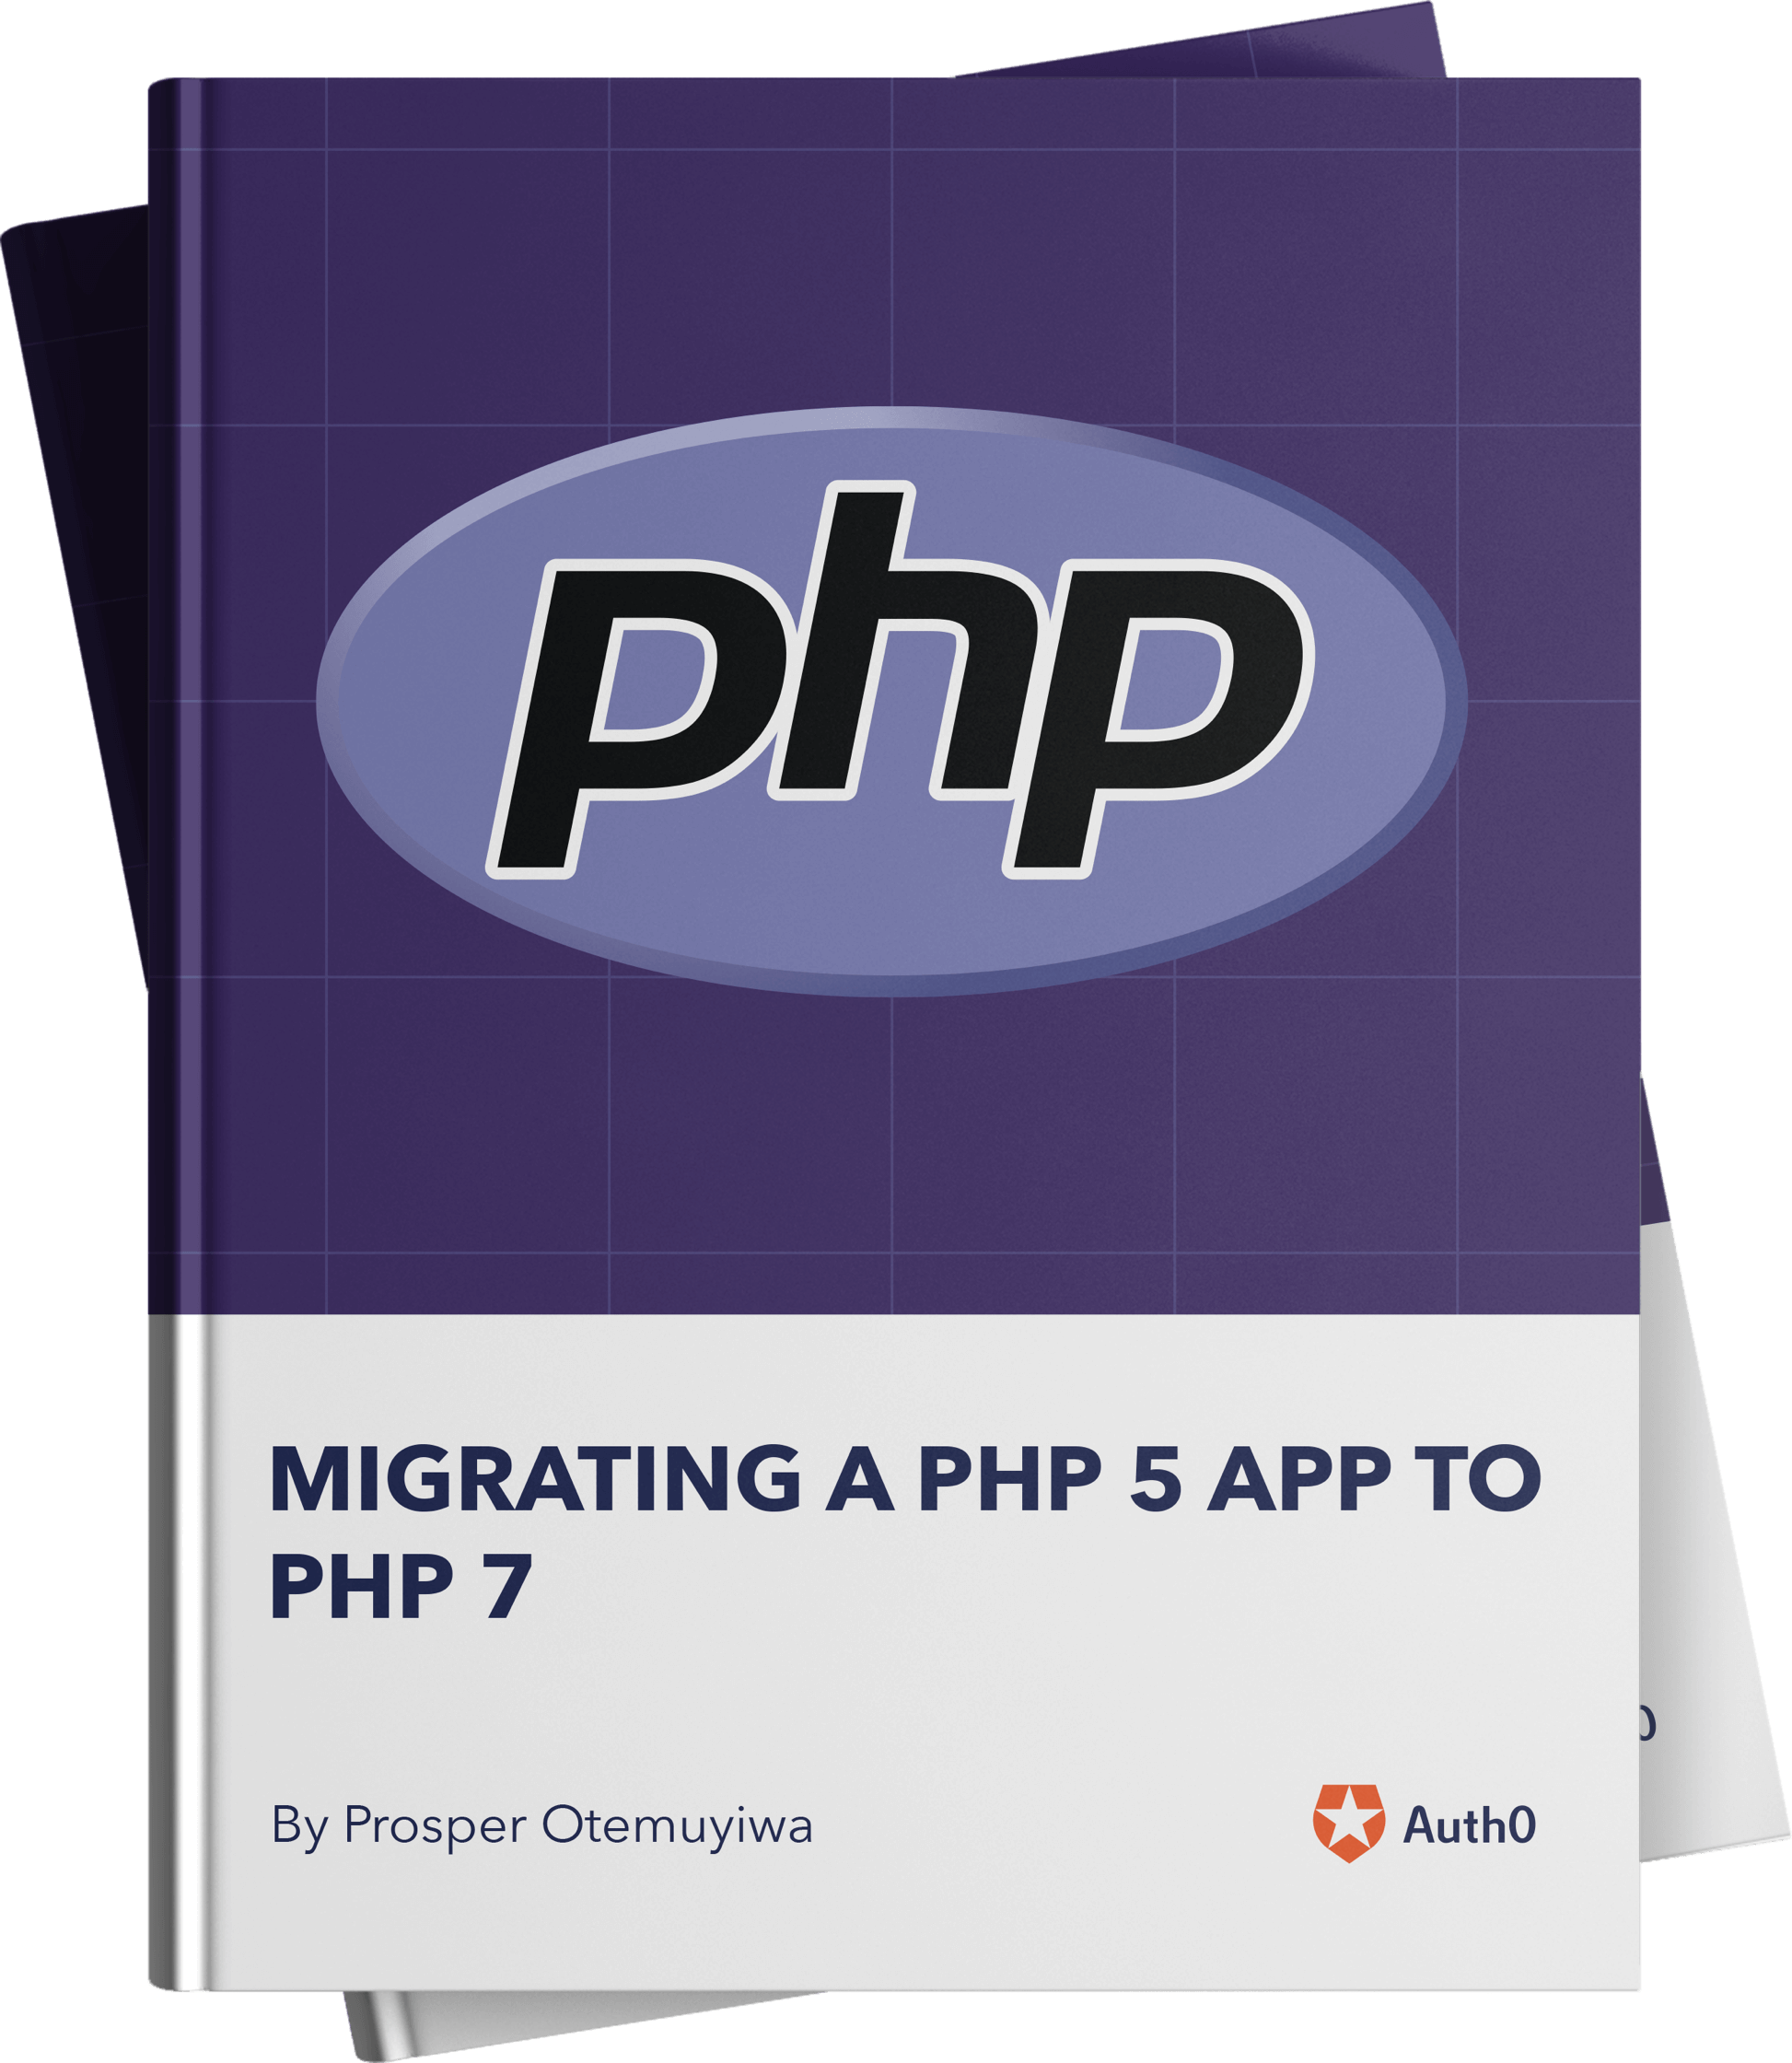 Migrating a PHP 5 app to PHP 7 Guide